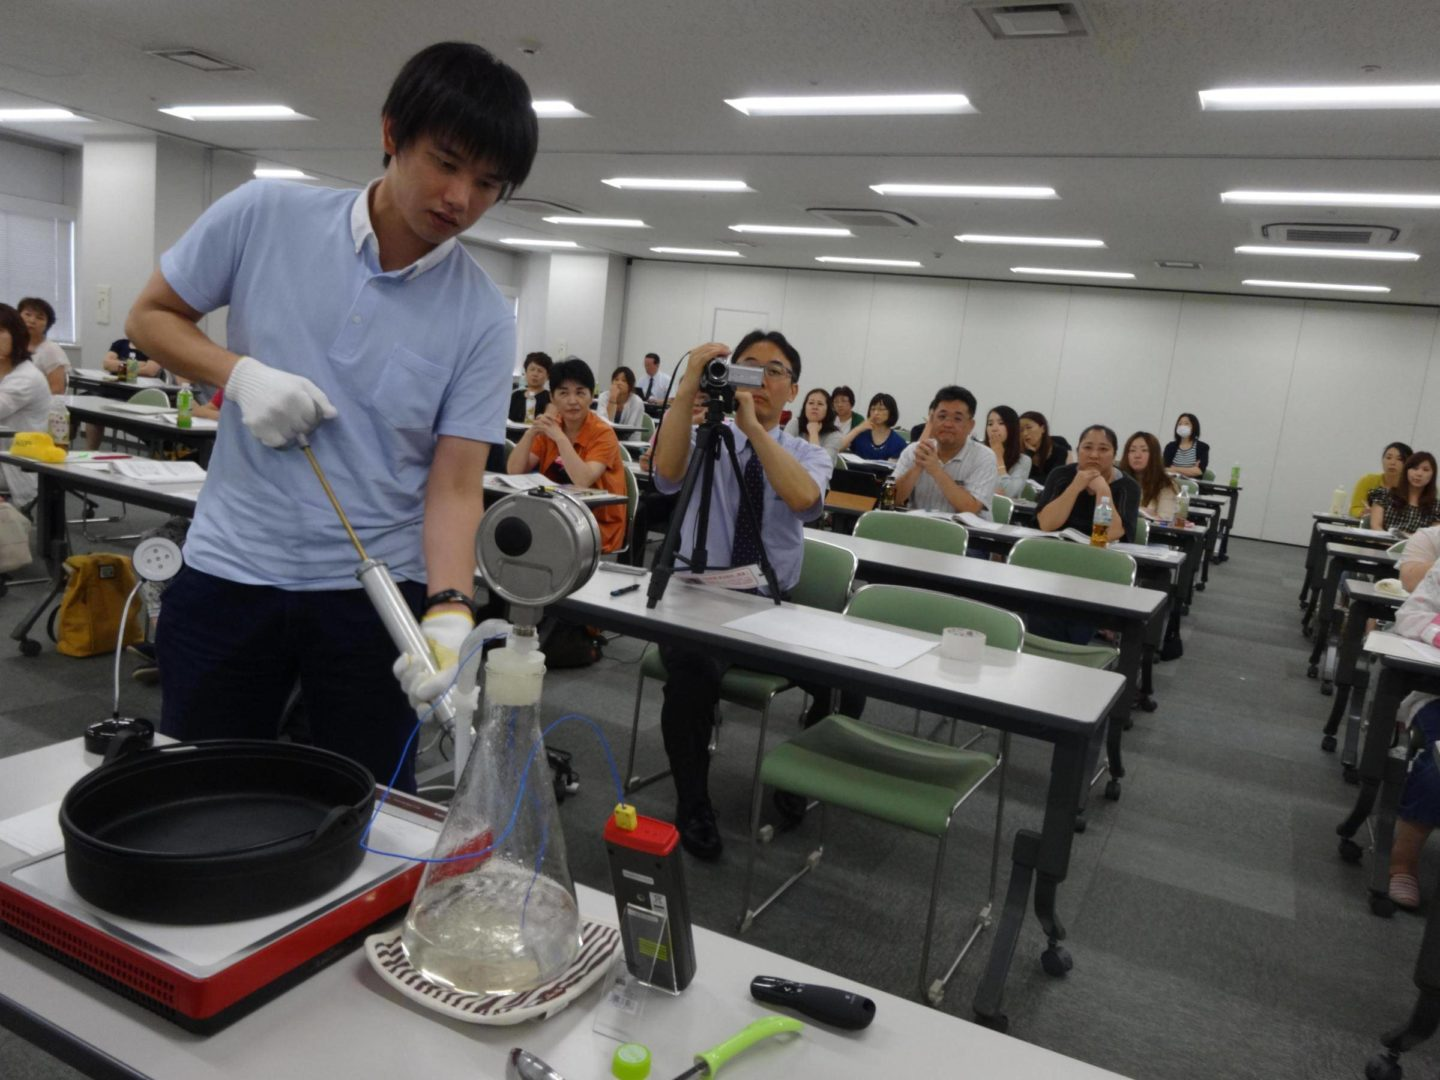 J-Miyasaki Miyanichi Kaikan 201508002 Meilleur Presentation Jan Steam Properties Pumping. Workshop on steam sterilization. Made possible through Meilleur.